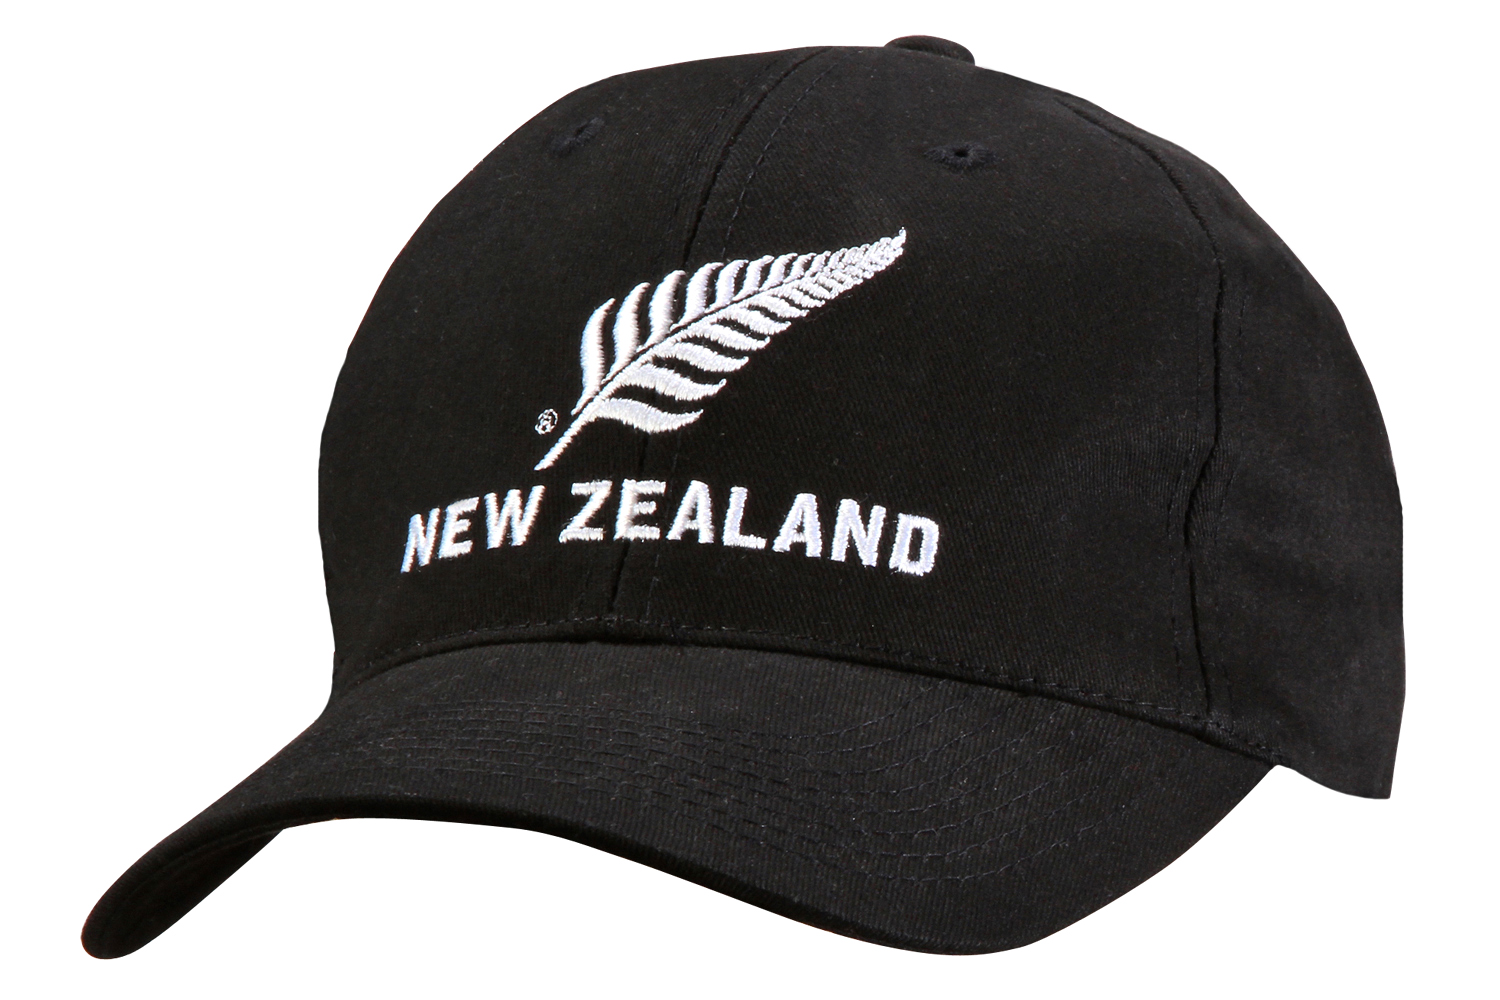 Silver Fern New Zealand Brushed Cotton Cap